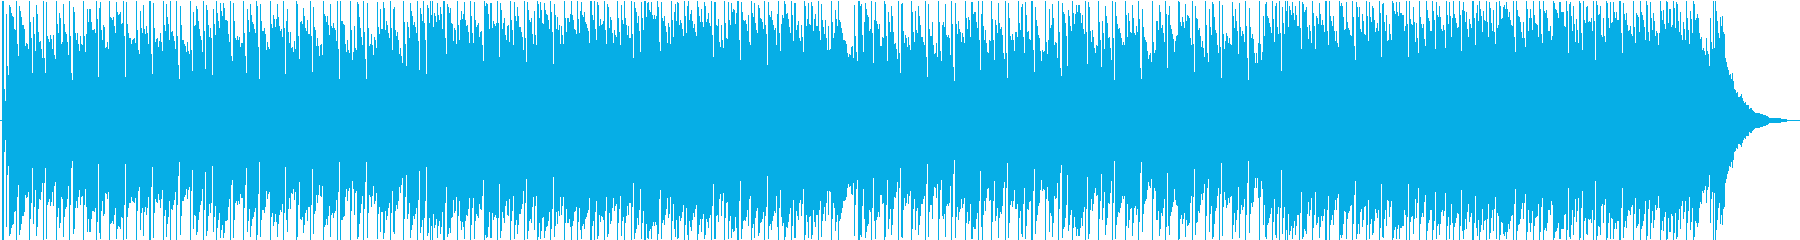 Downtown's reproduced waveform